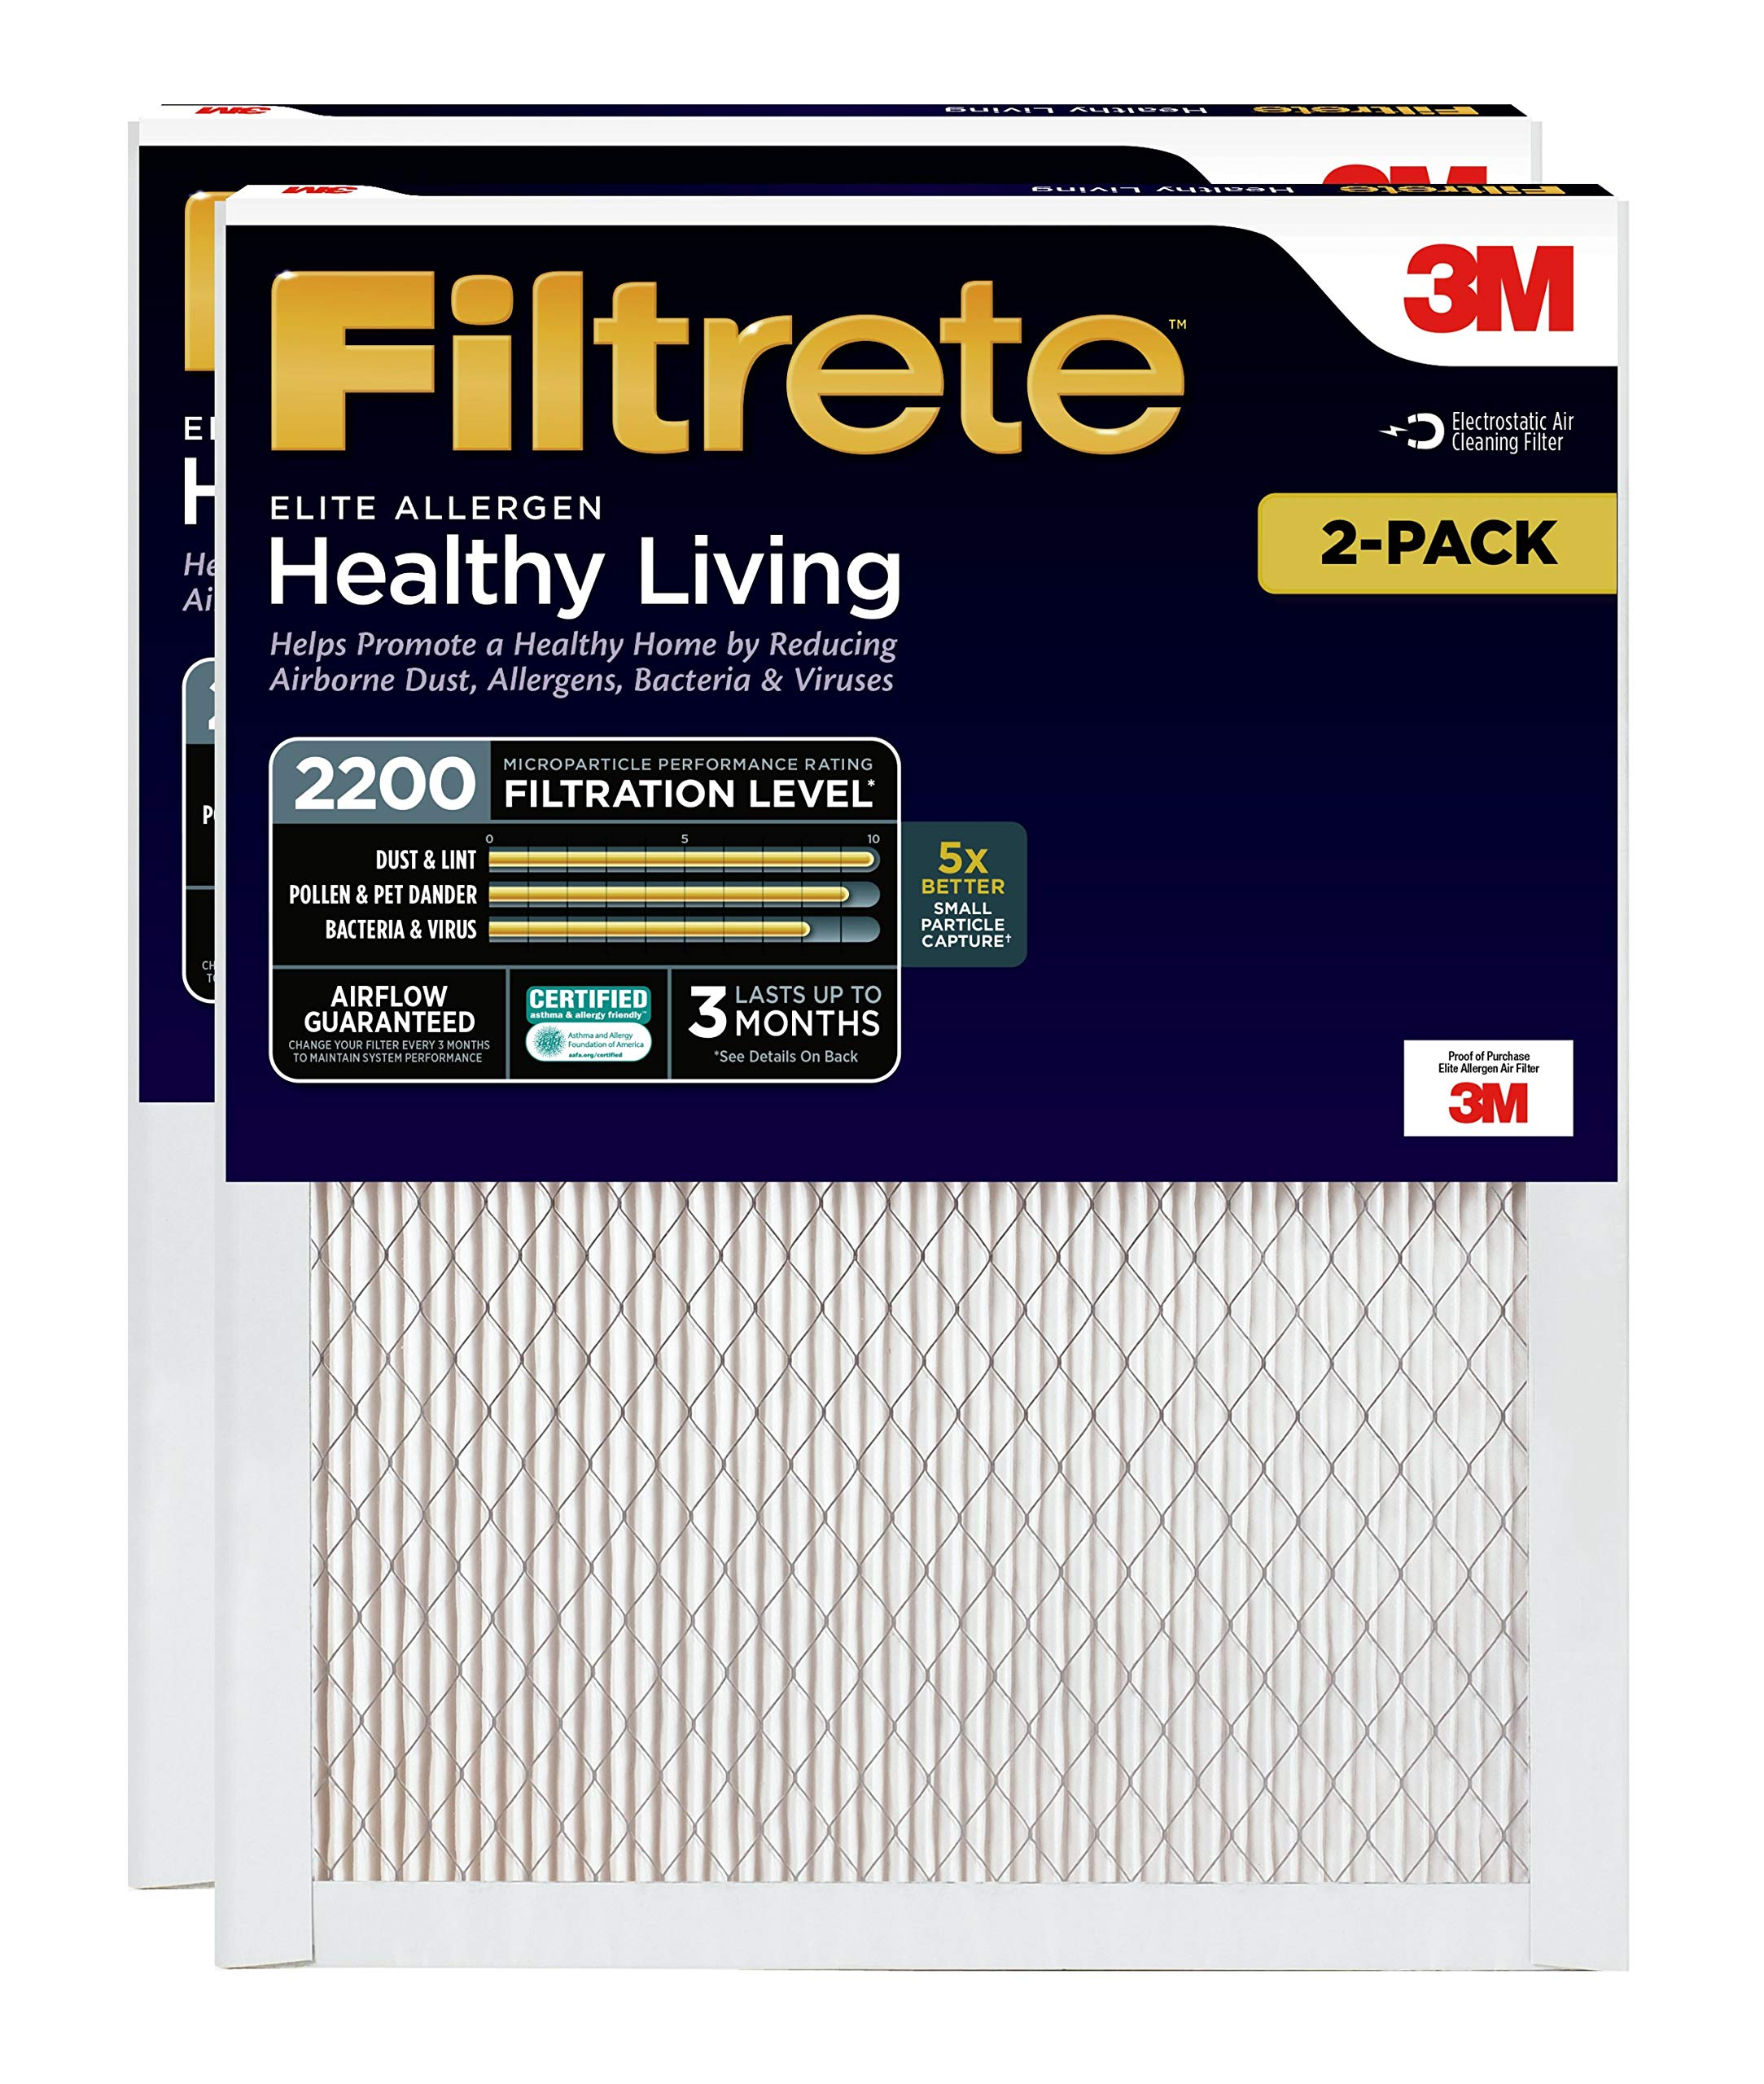 Filtrete 16x25x1, AC Furnace Air Filter, MPR 2200, Healthy Living Elite Allergen, 2-Pack by Filtrete